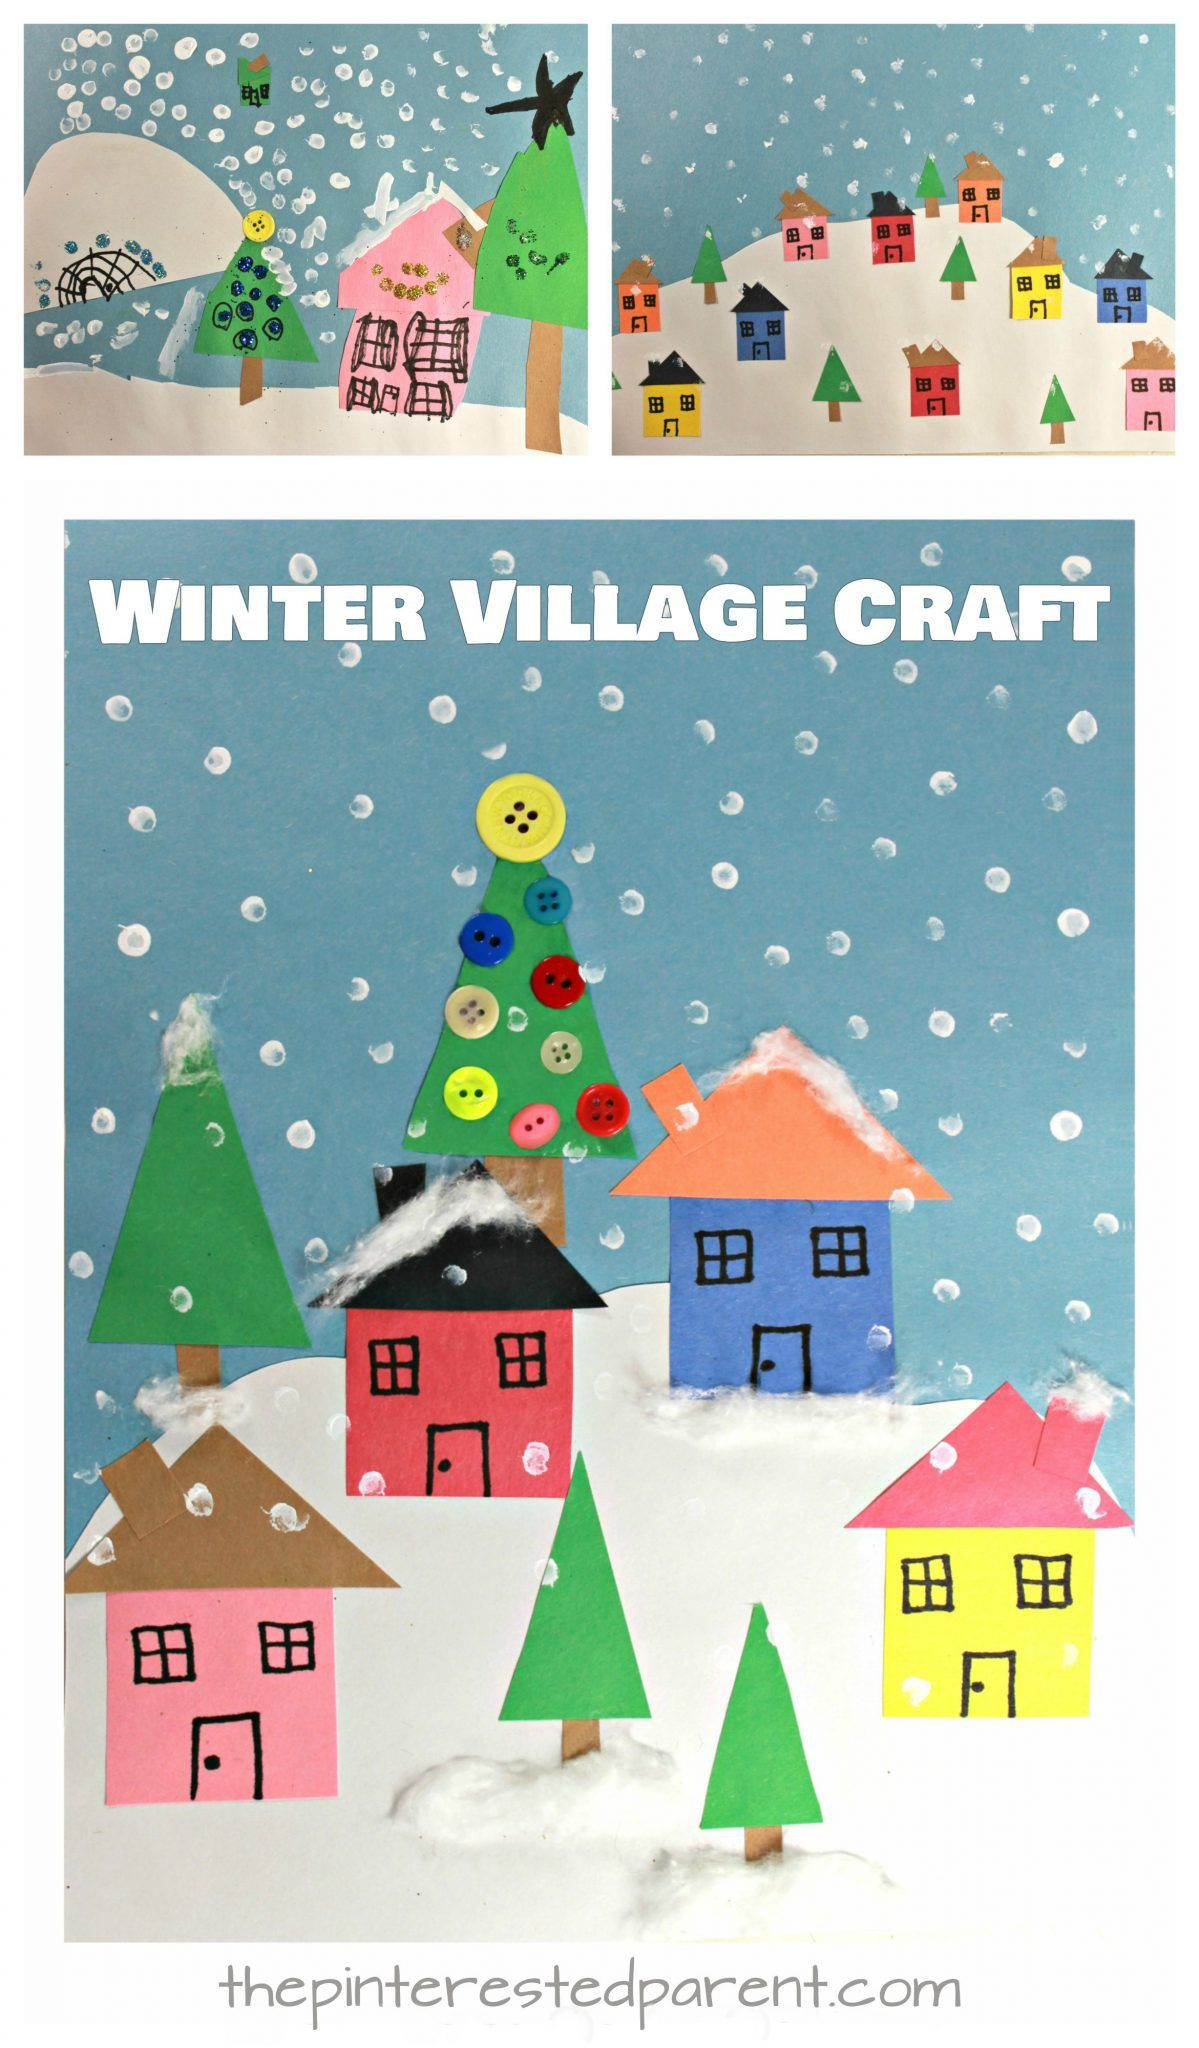 Christmas Arts And Crafts For Kids Button Snowflake Craft And 30 Christmas Ornaments Crafts